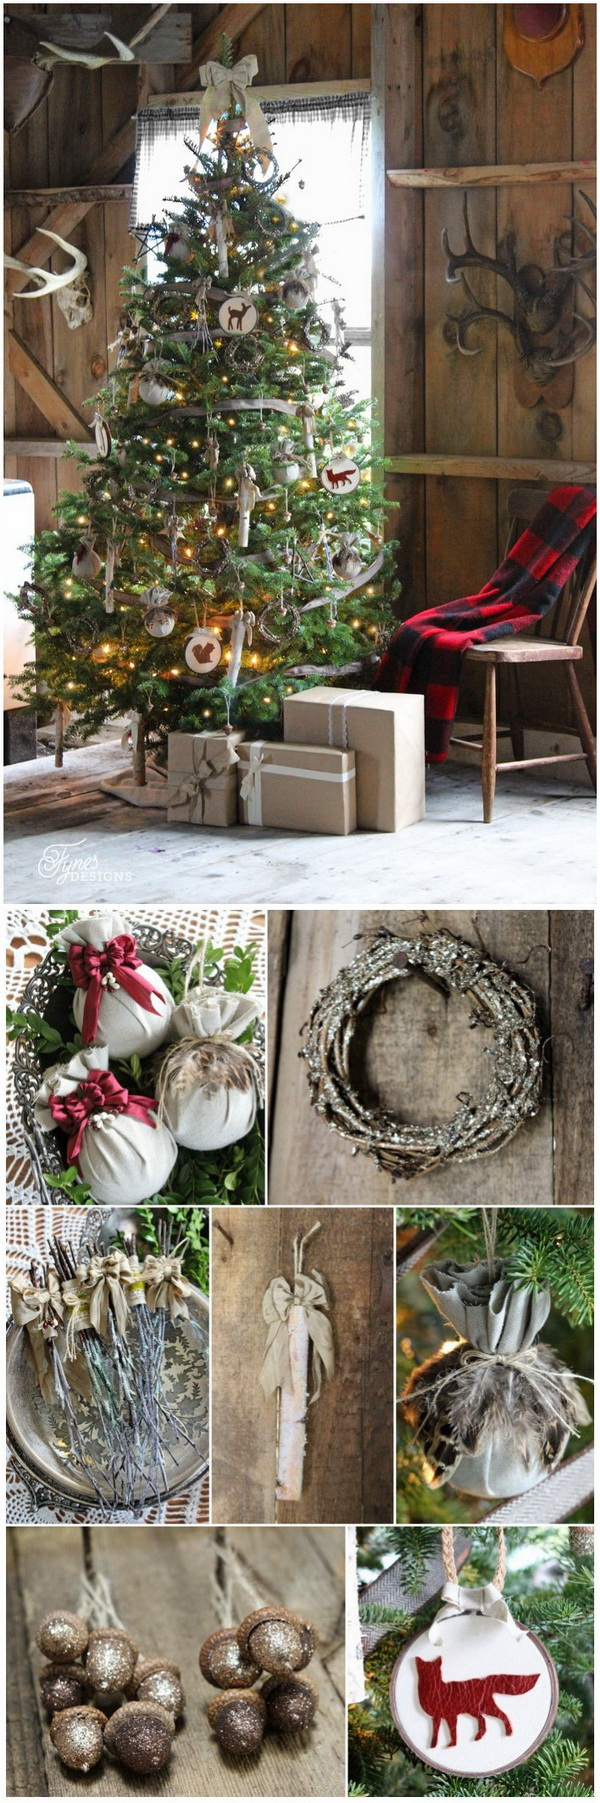 Rustic Christmas Tree. Adorn your Christmas home with this rustic Christmas tree dressed up wooden ornaments, burlap ribbons, dangling birch sticks, glittered acorns, glittered grapevine wreaths, branches and more natural elements.